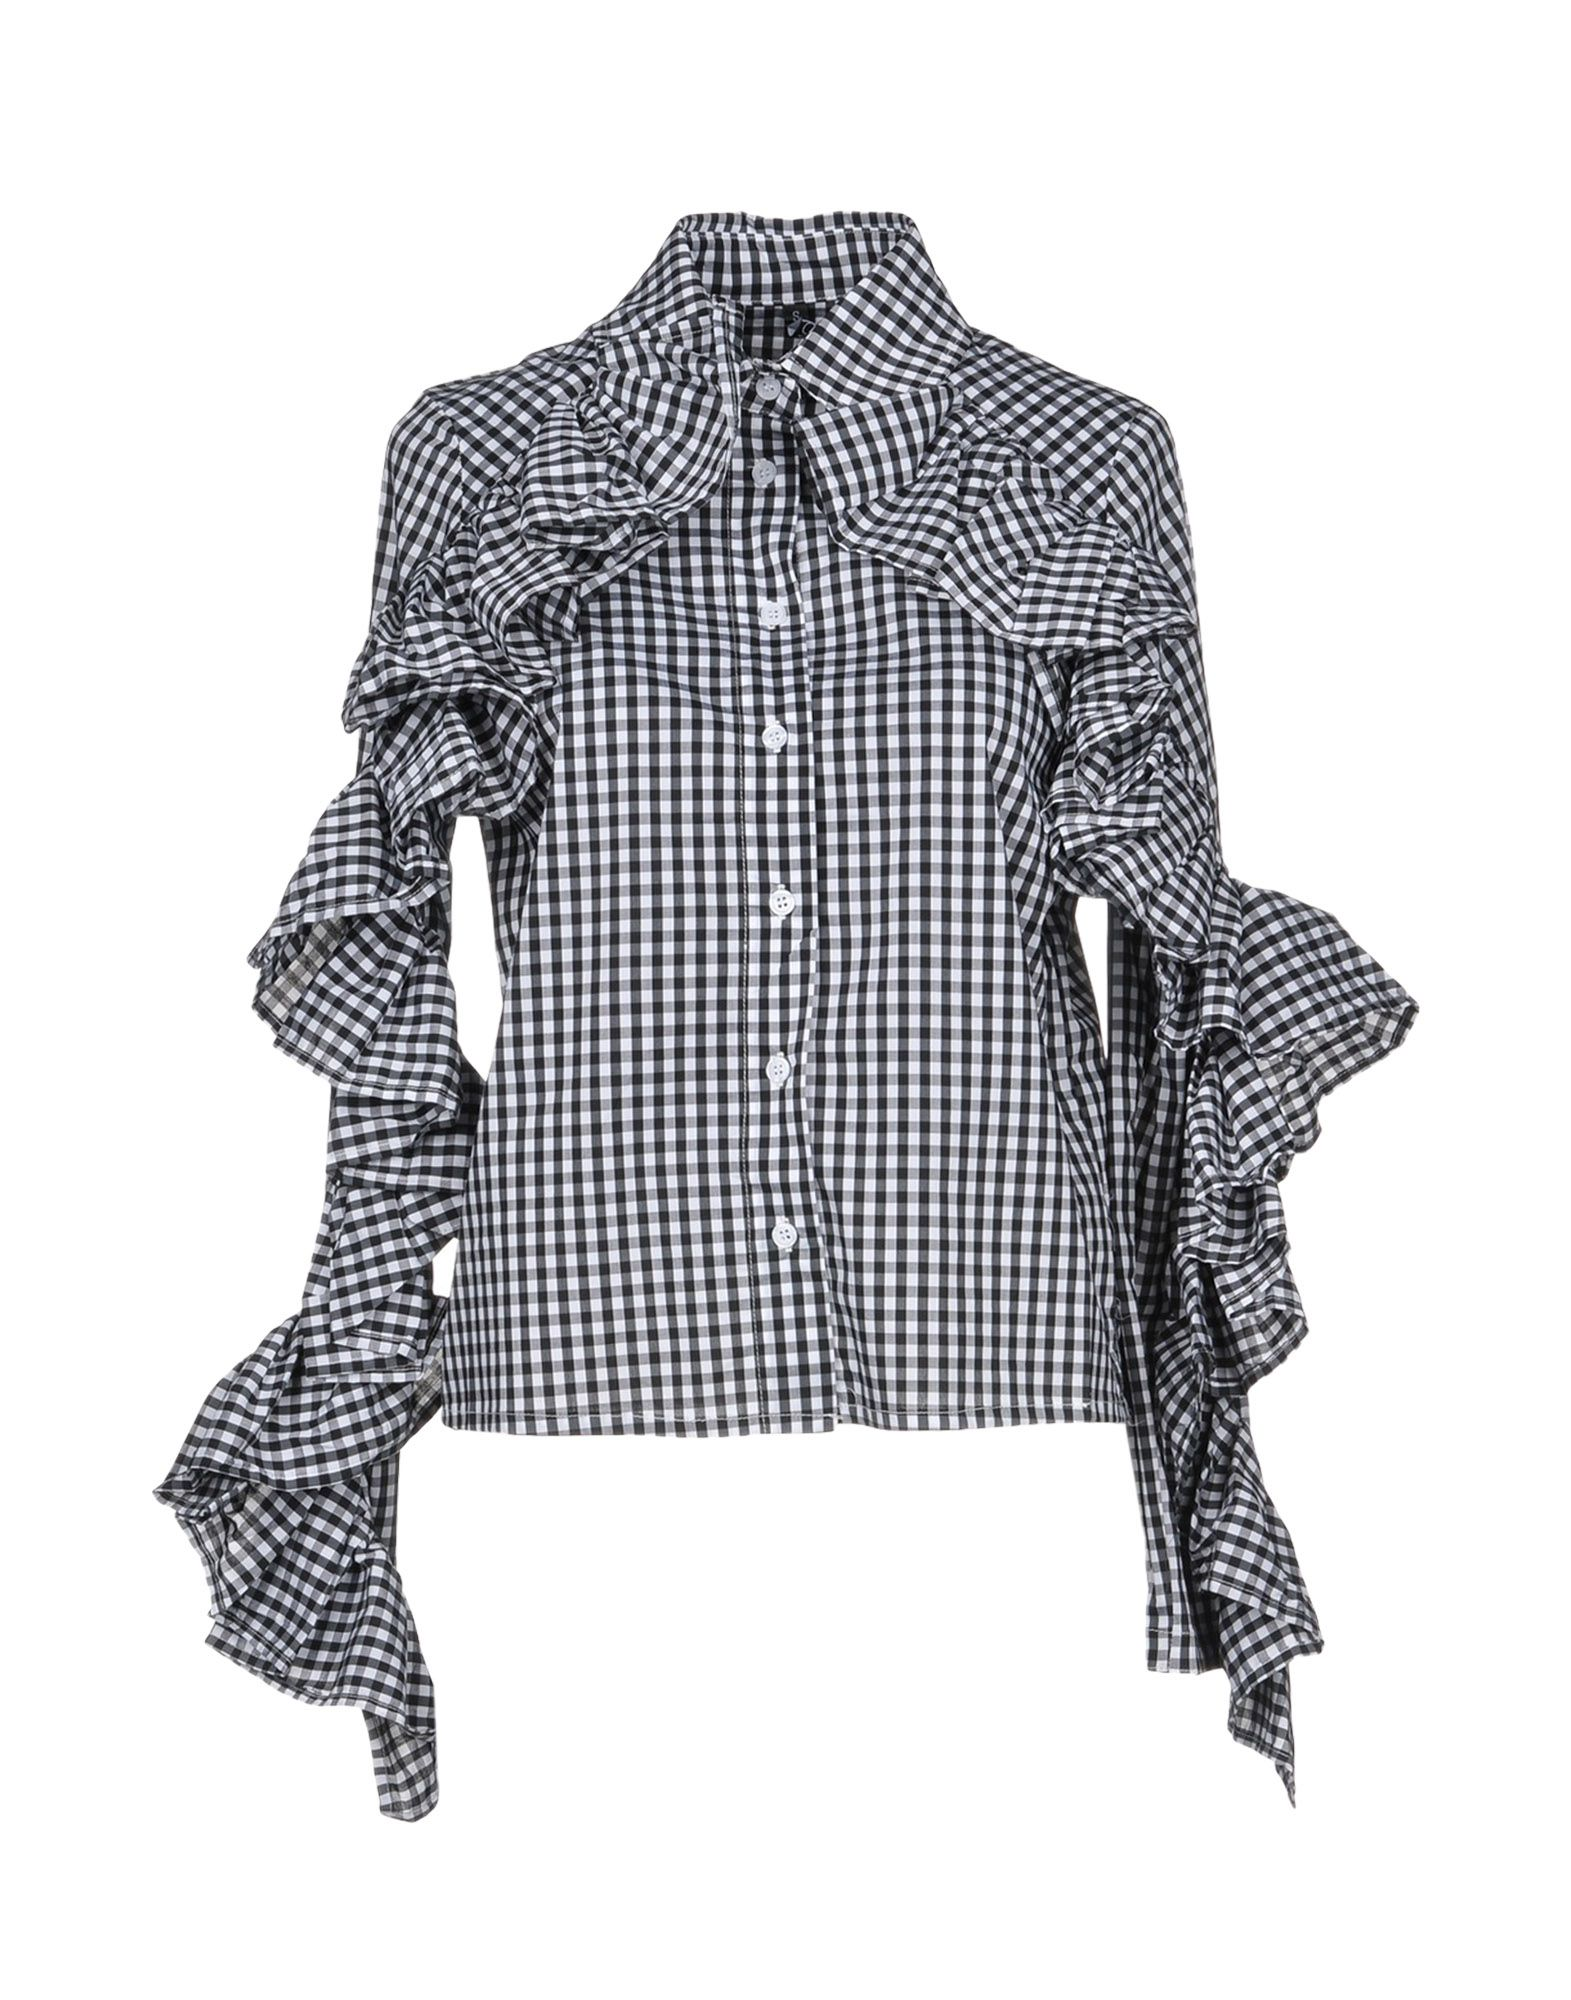 TPN Checked Shirt in Black